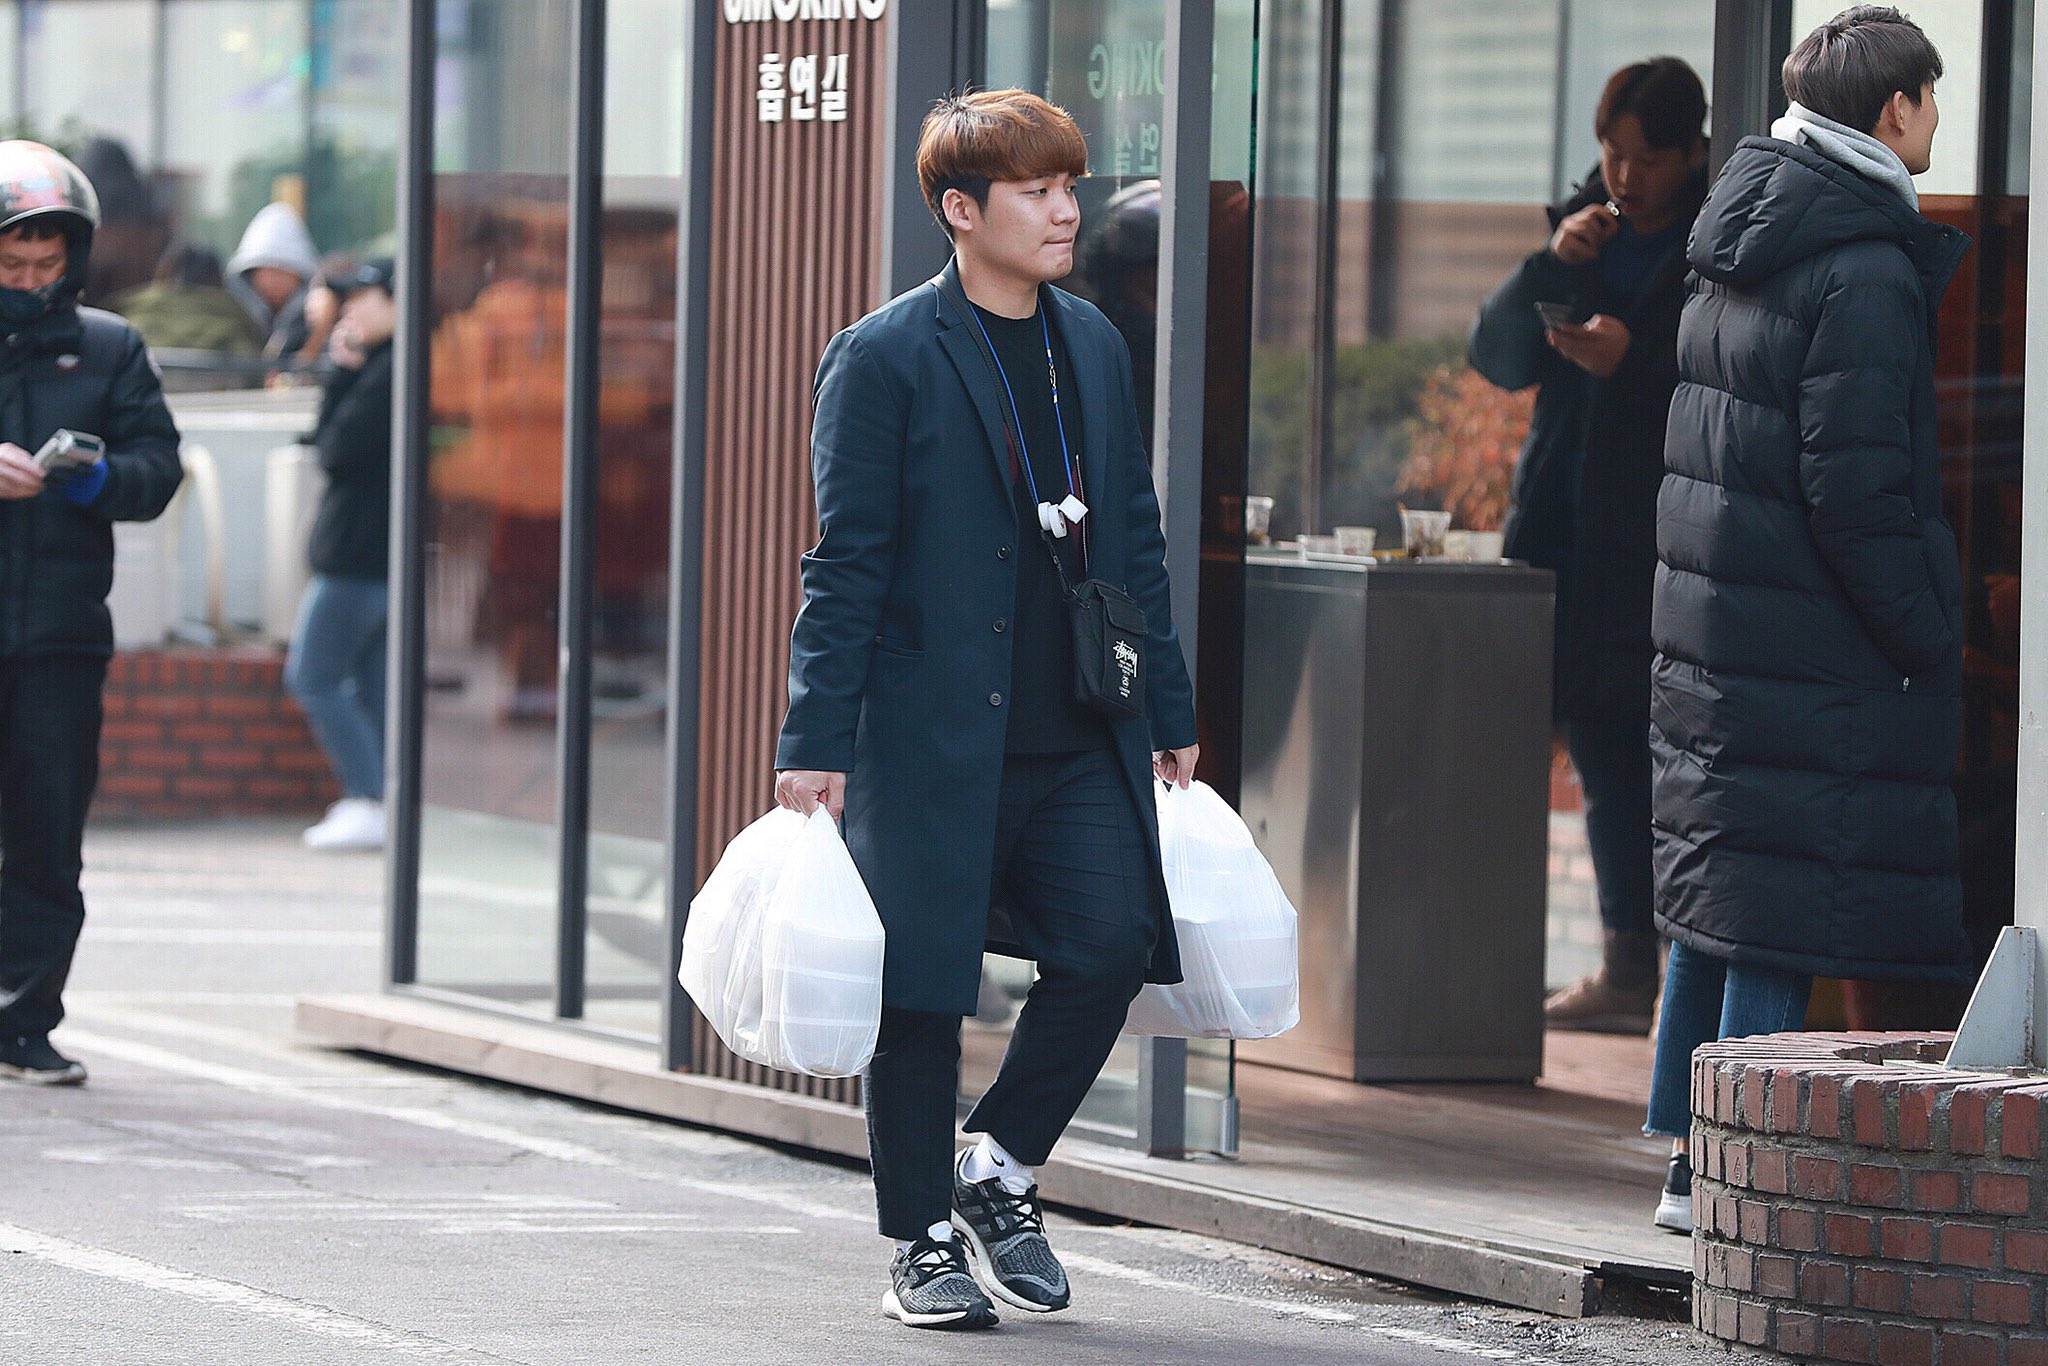 twice handsome manager